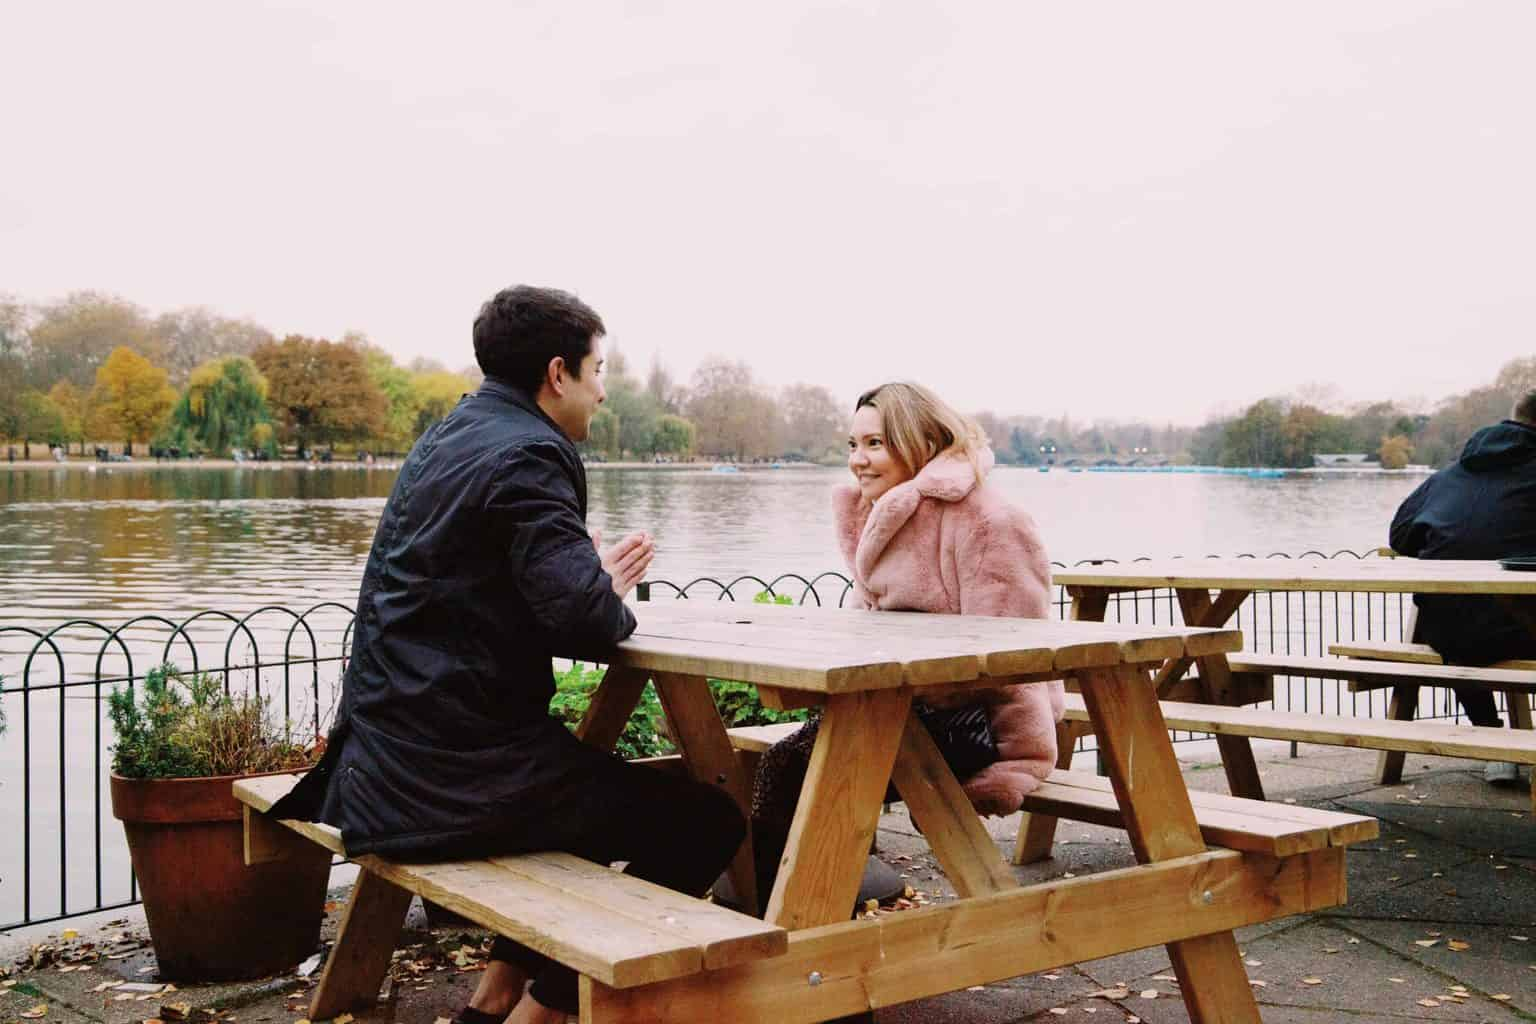 couple talking to each other by river - get to know you questions